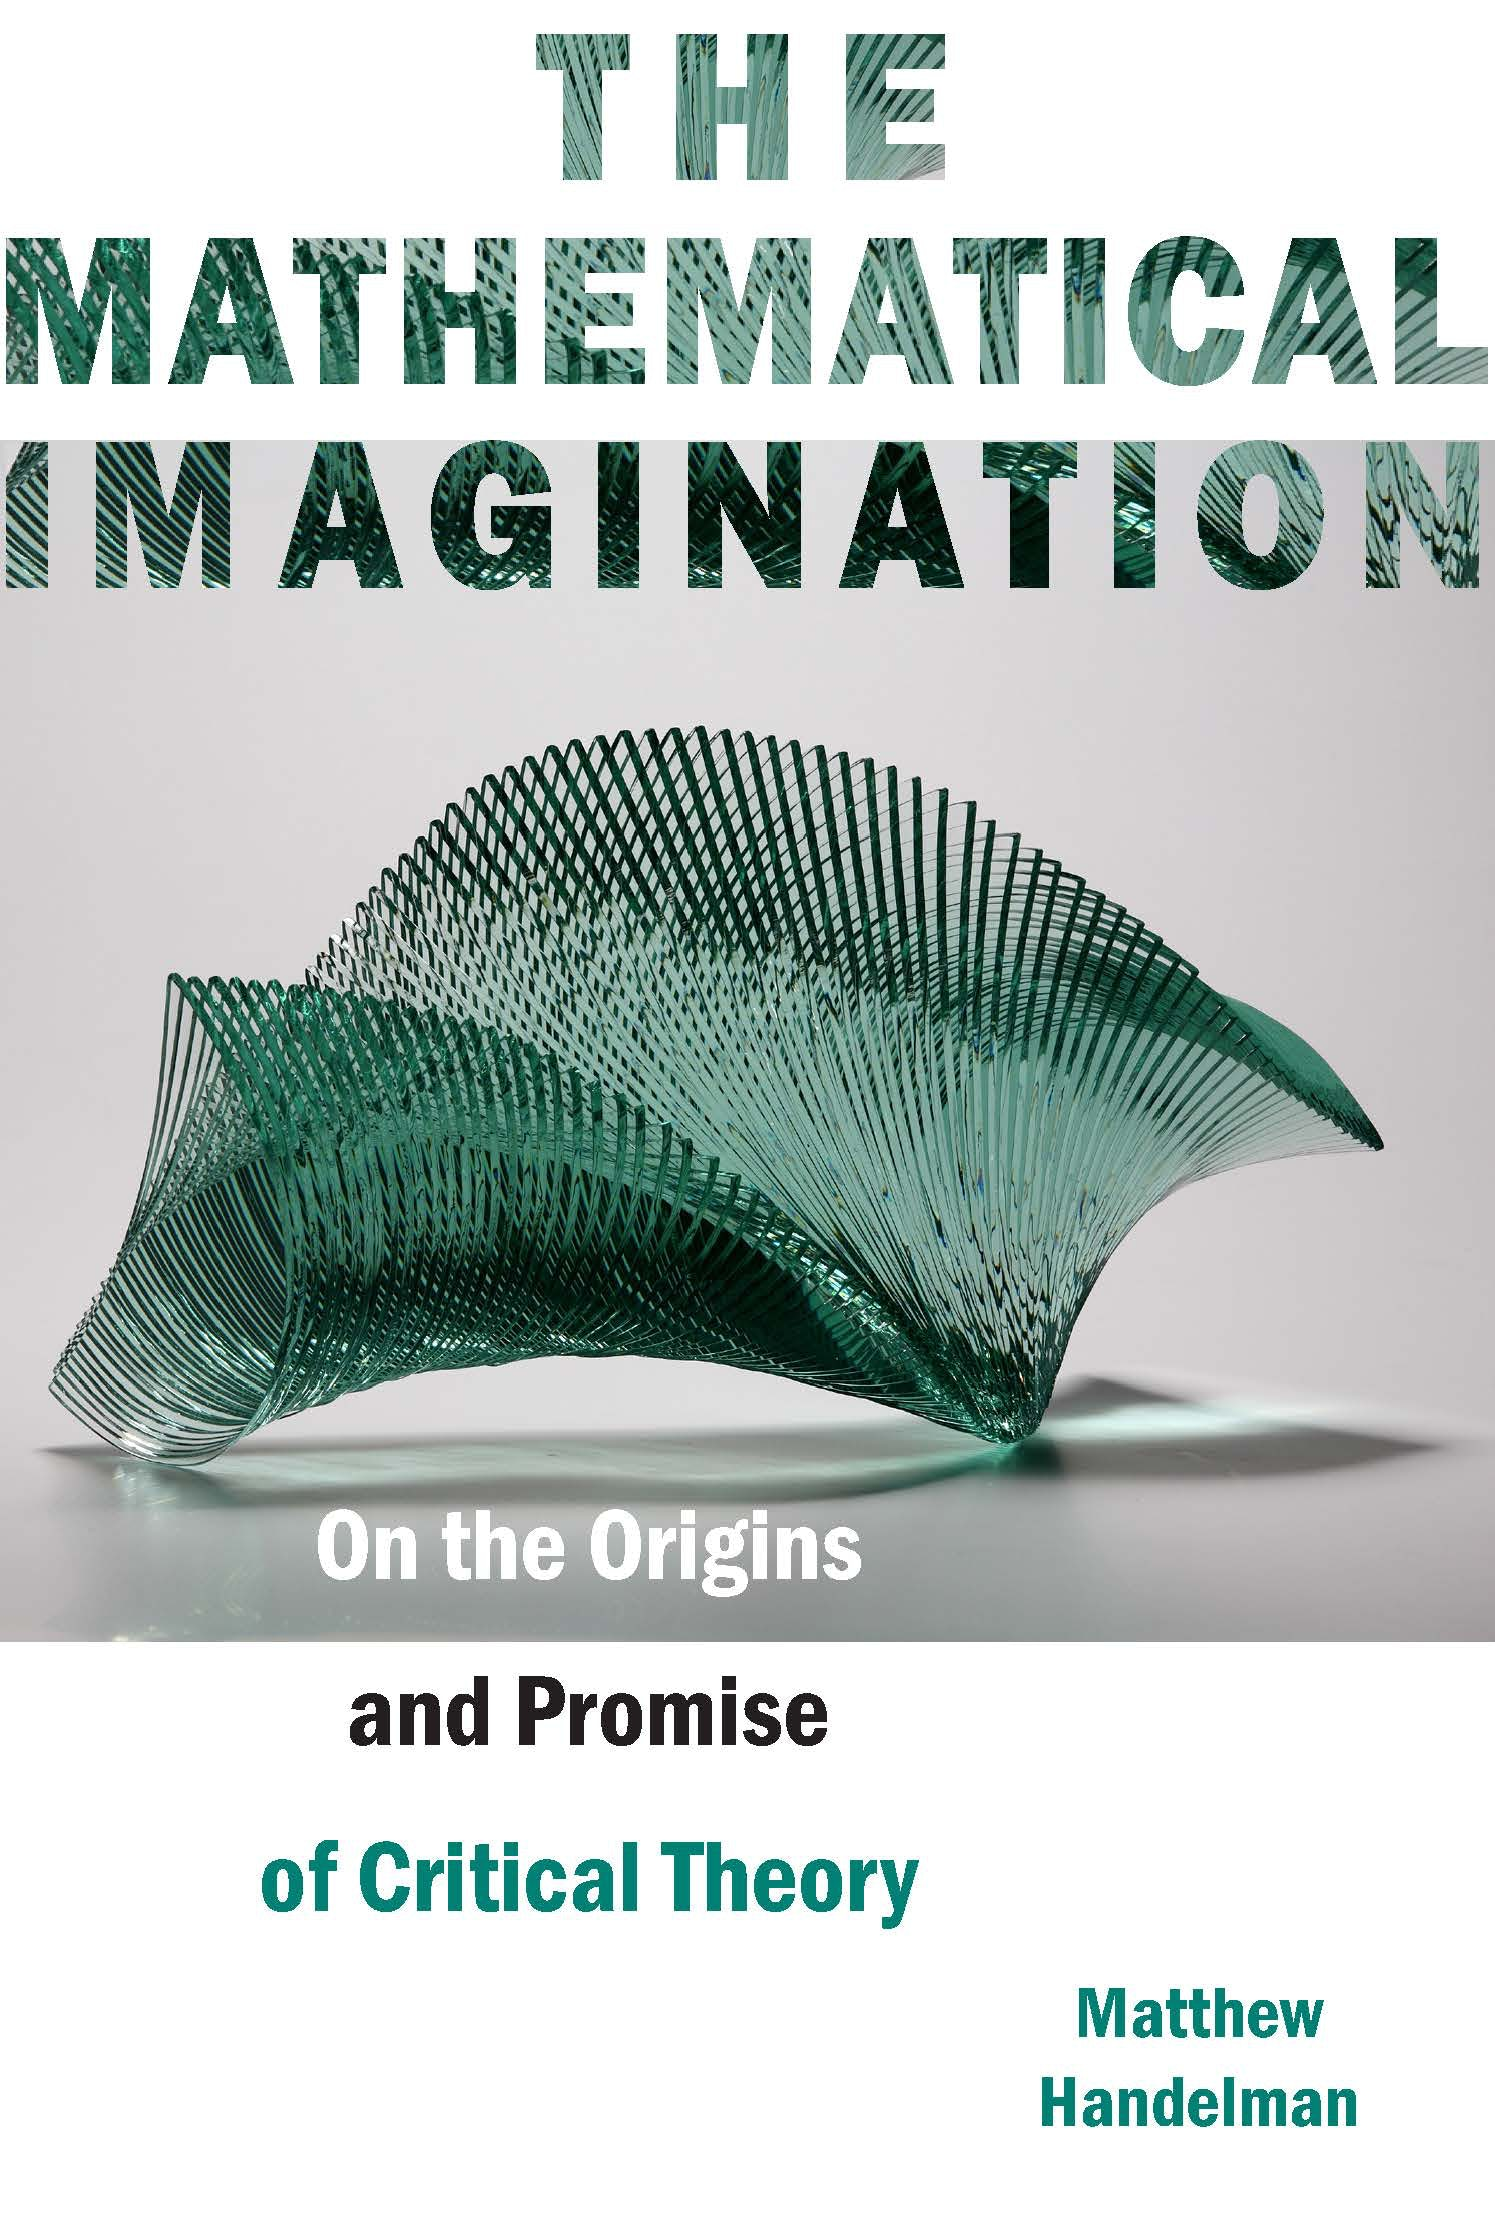 The Mathematical Imagination: On the Origins and Promise of Critical Theory Book Cover